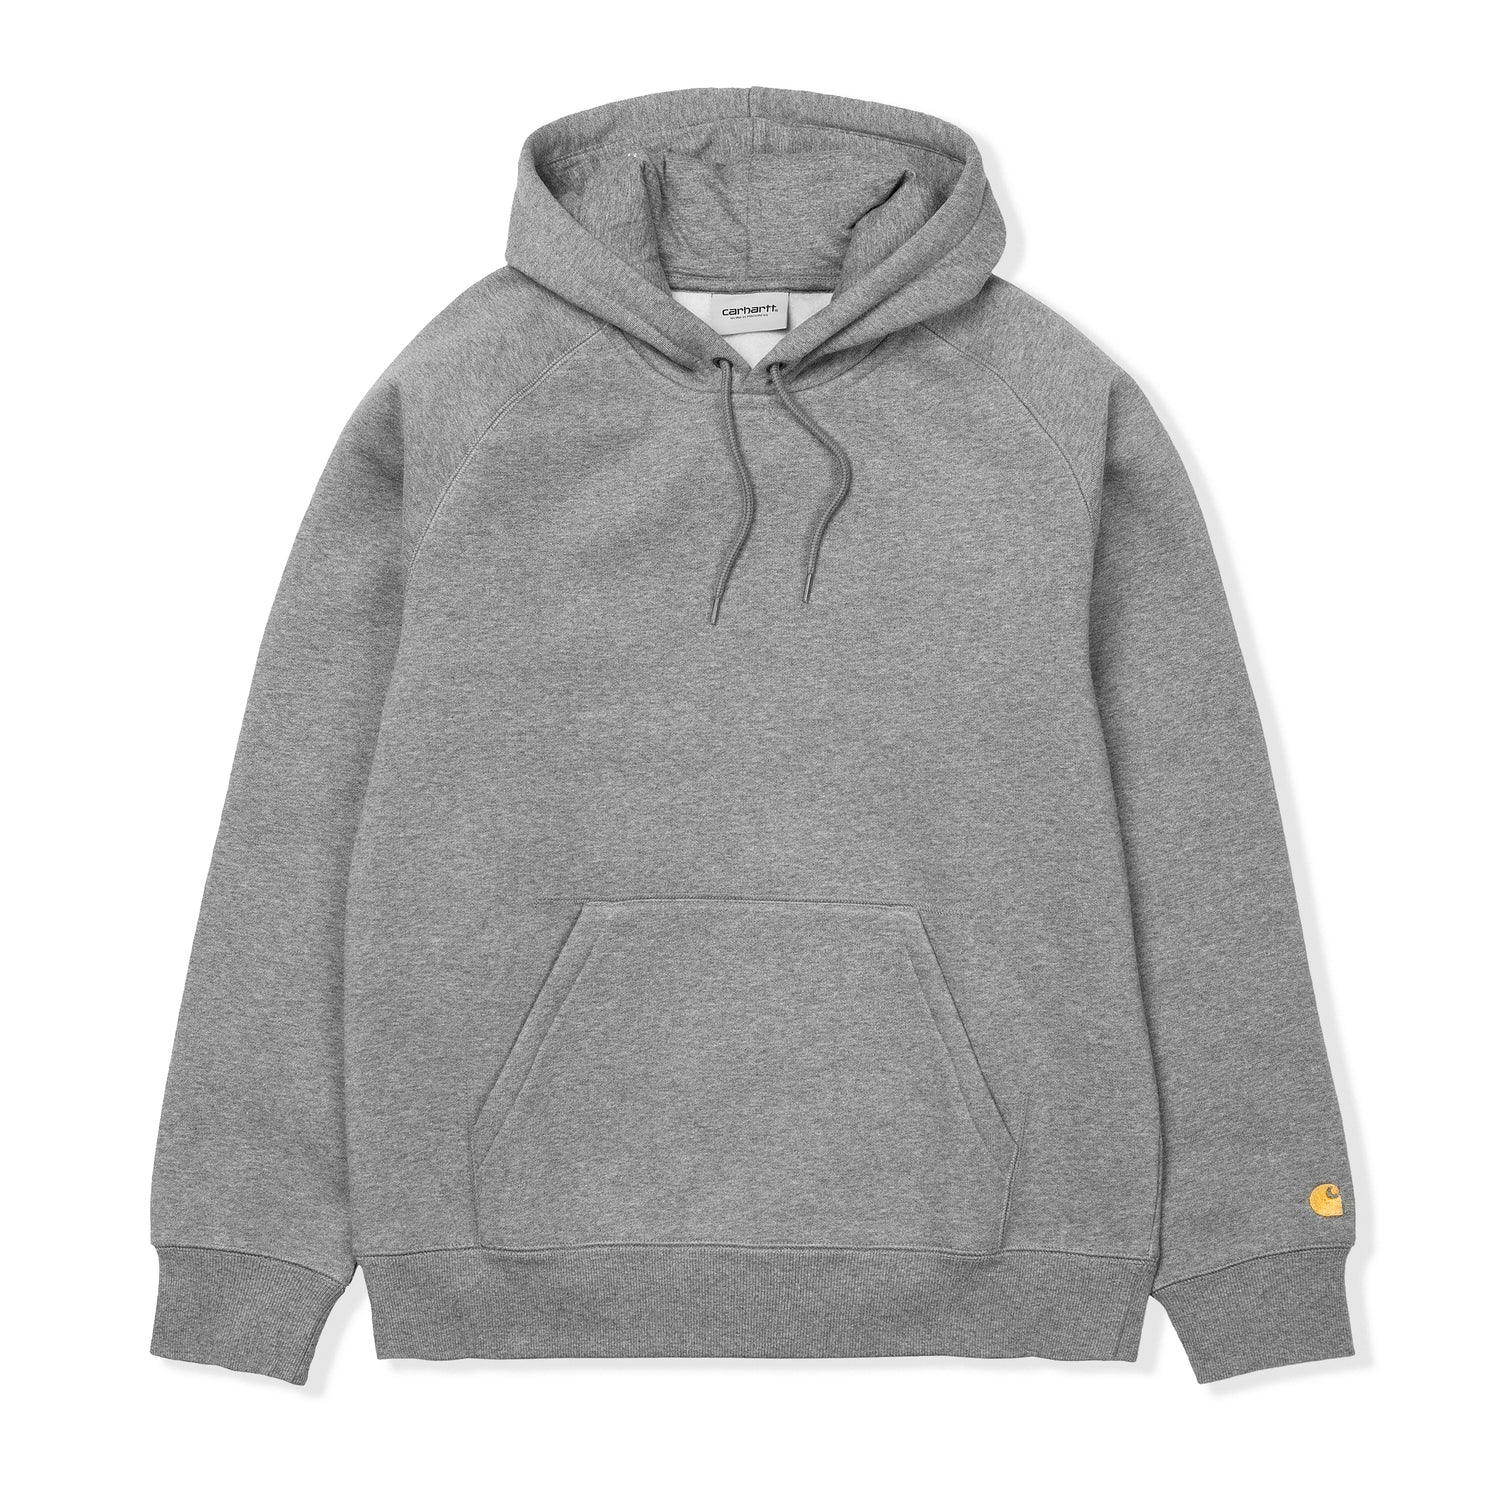 Chase Pullover, Heather Grey